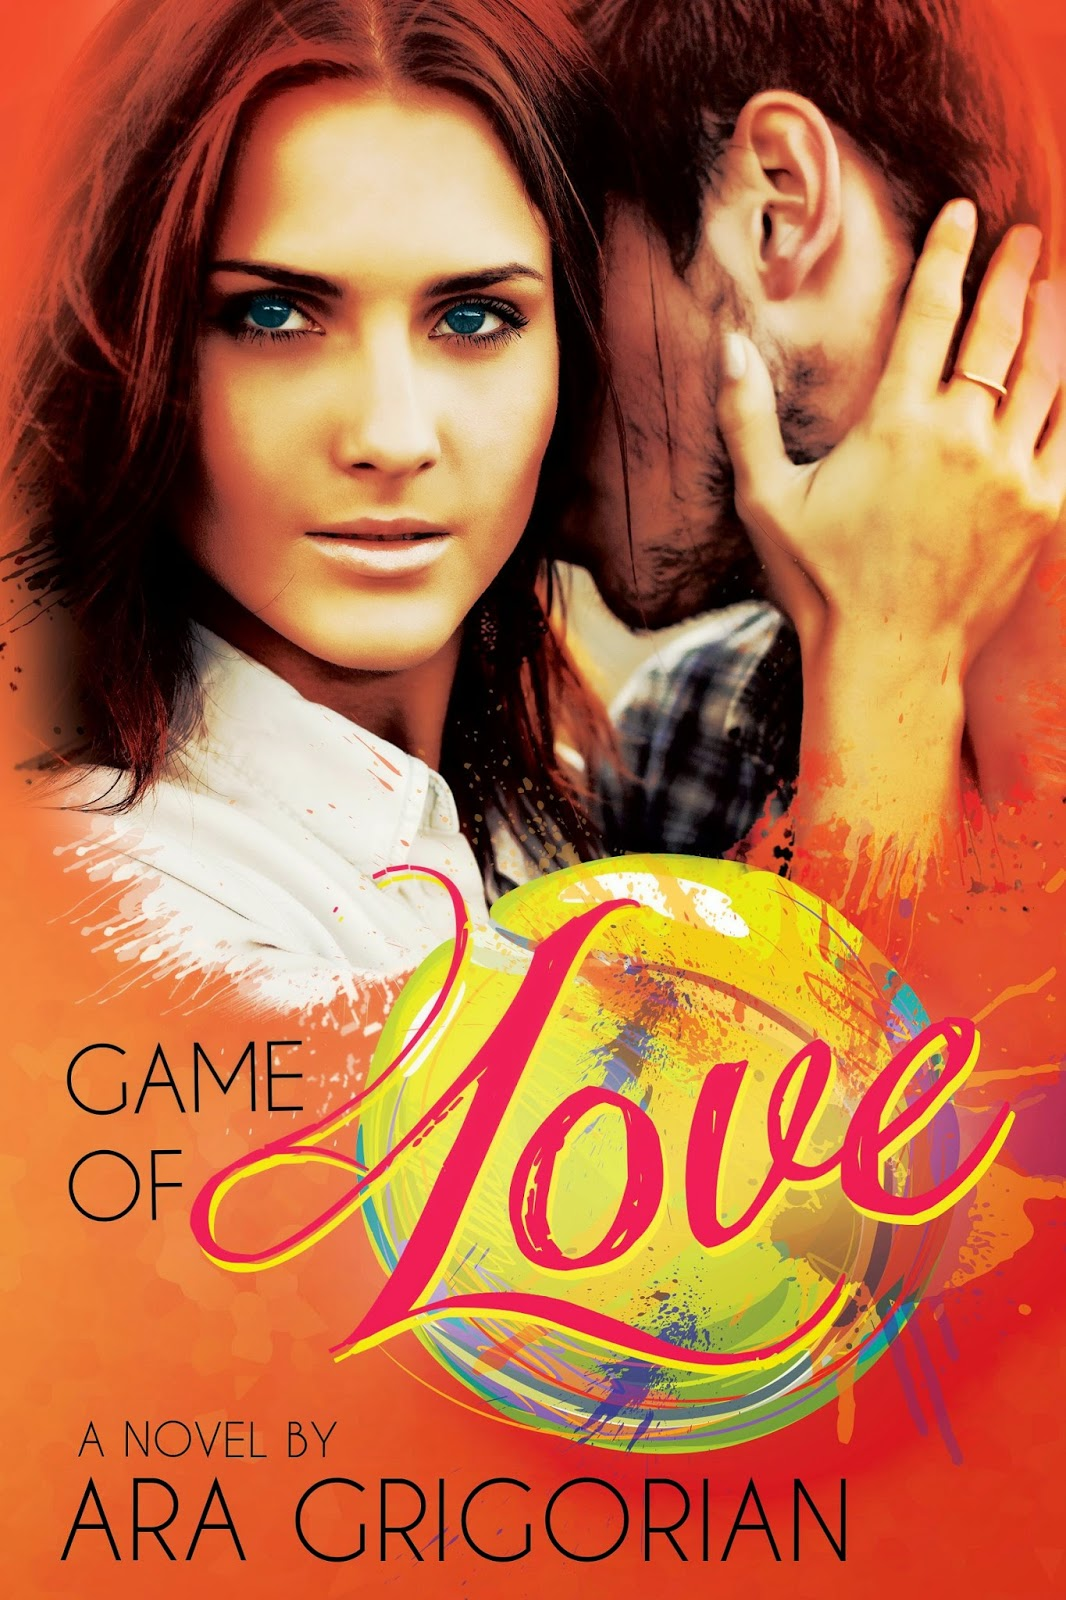 http://www.amazon.com/Game-Love-Ara-Grigorian/dp/1620078538/